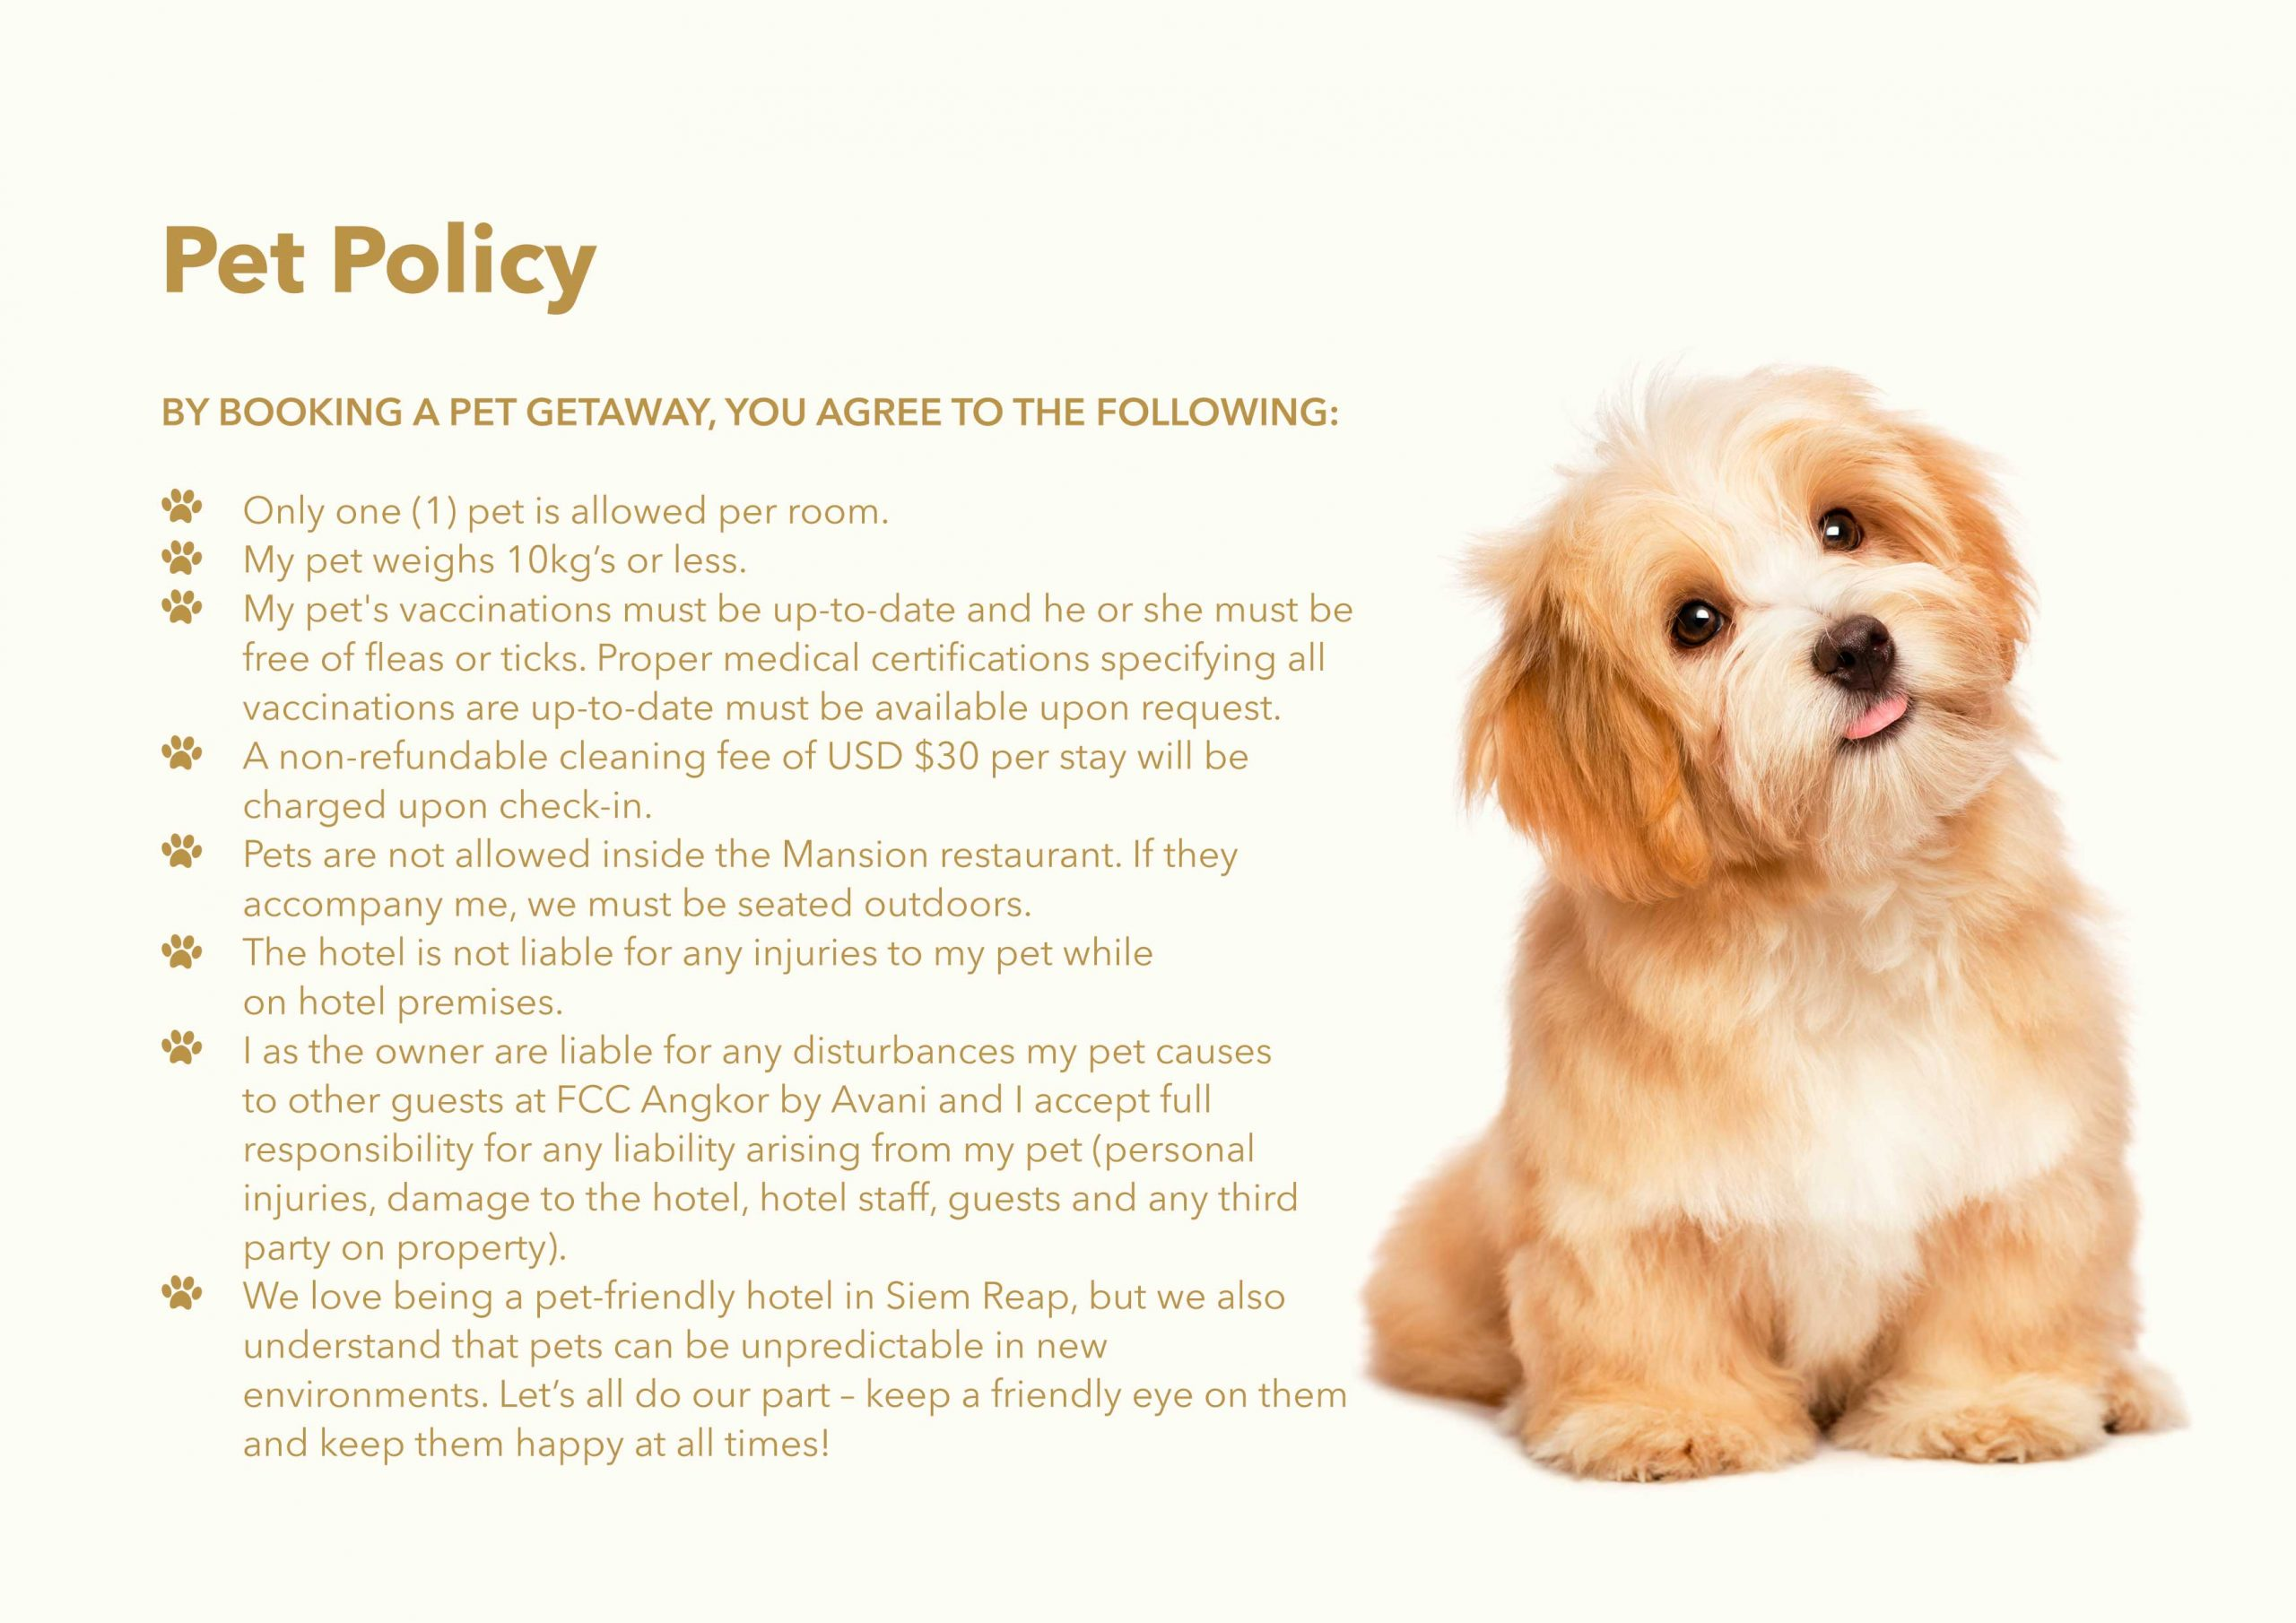 Pet Policy at FCC Angkor - Pet Friendly Hotel in Siem Reap